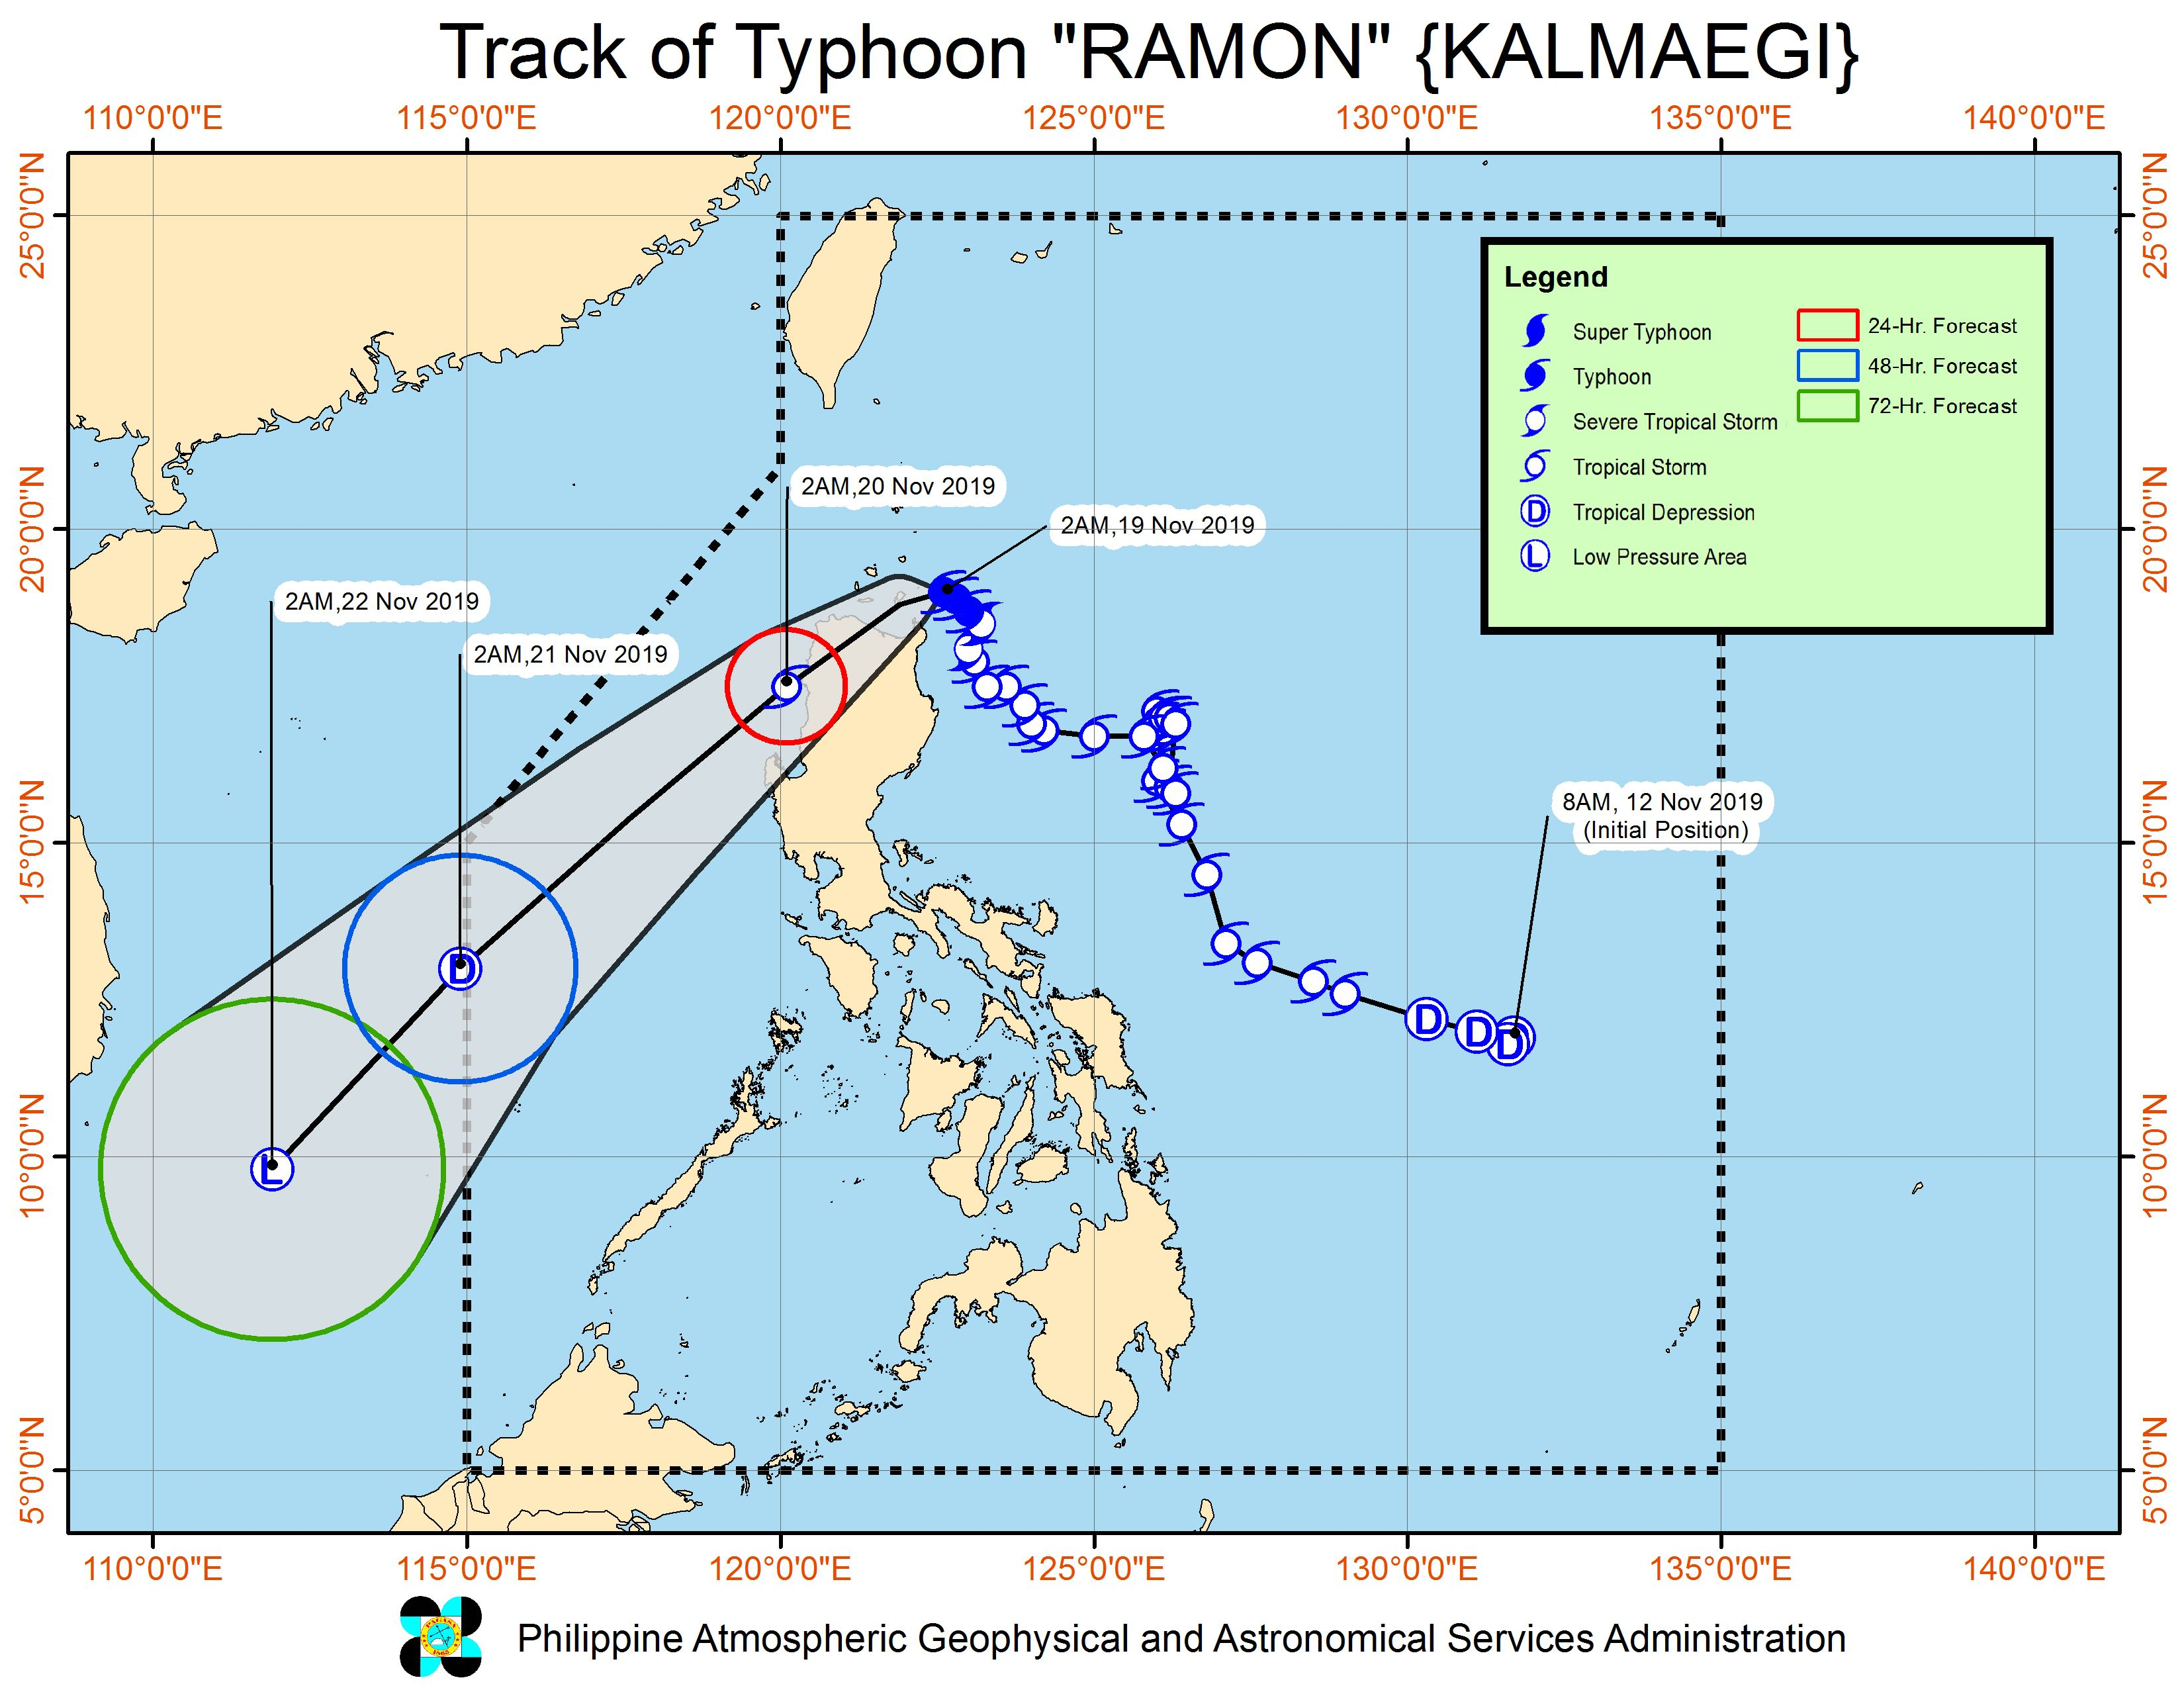 Forecast track of Typhoon Ramon (Kalmaegi) as of November 19, 2019, 5 am. Image from PAGASA